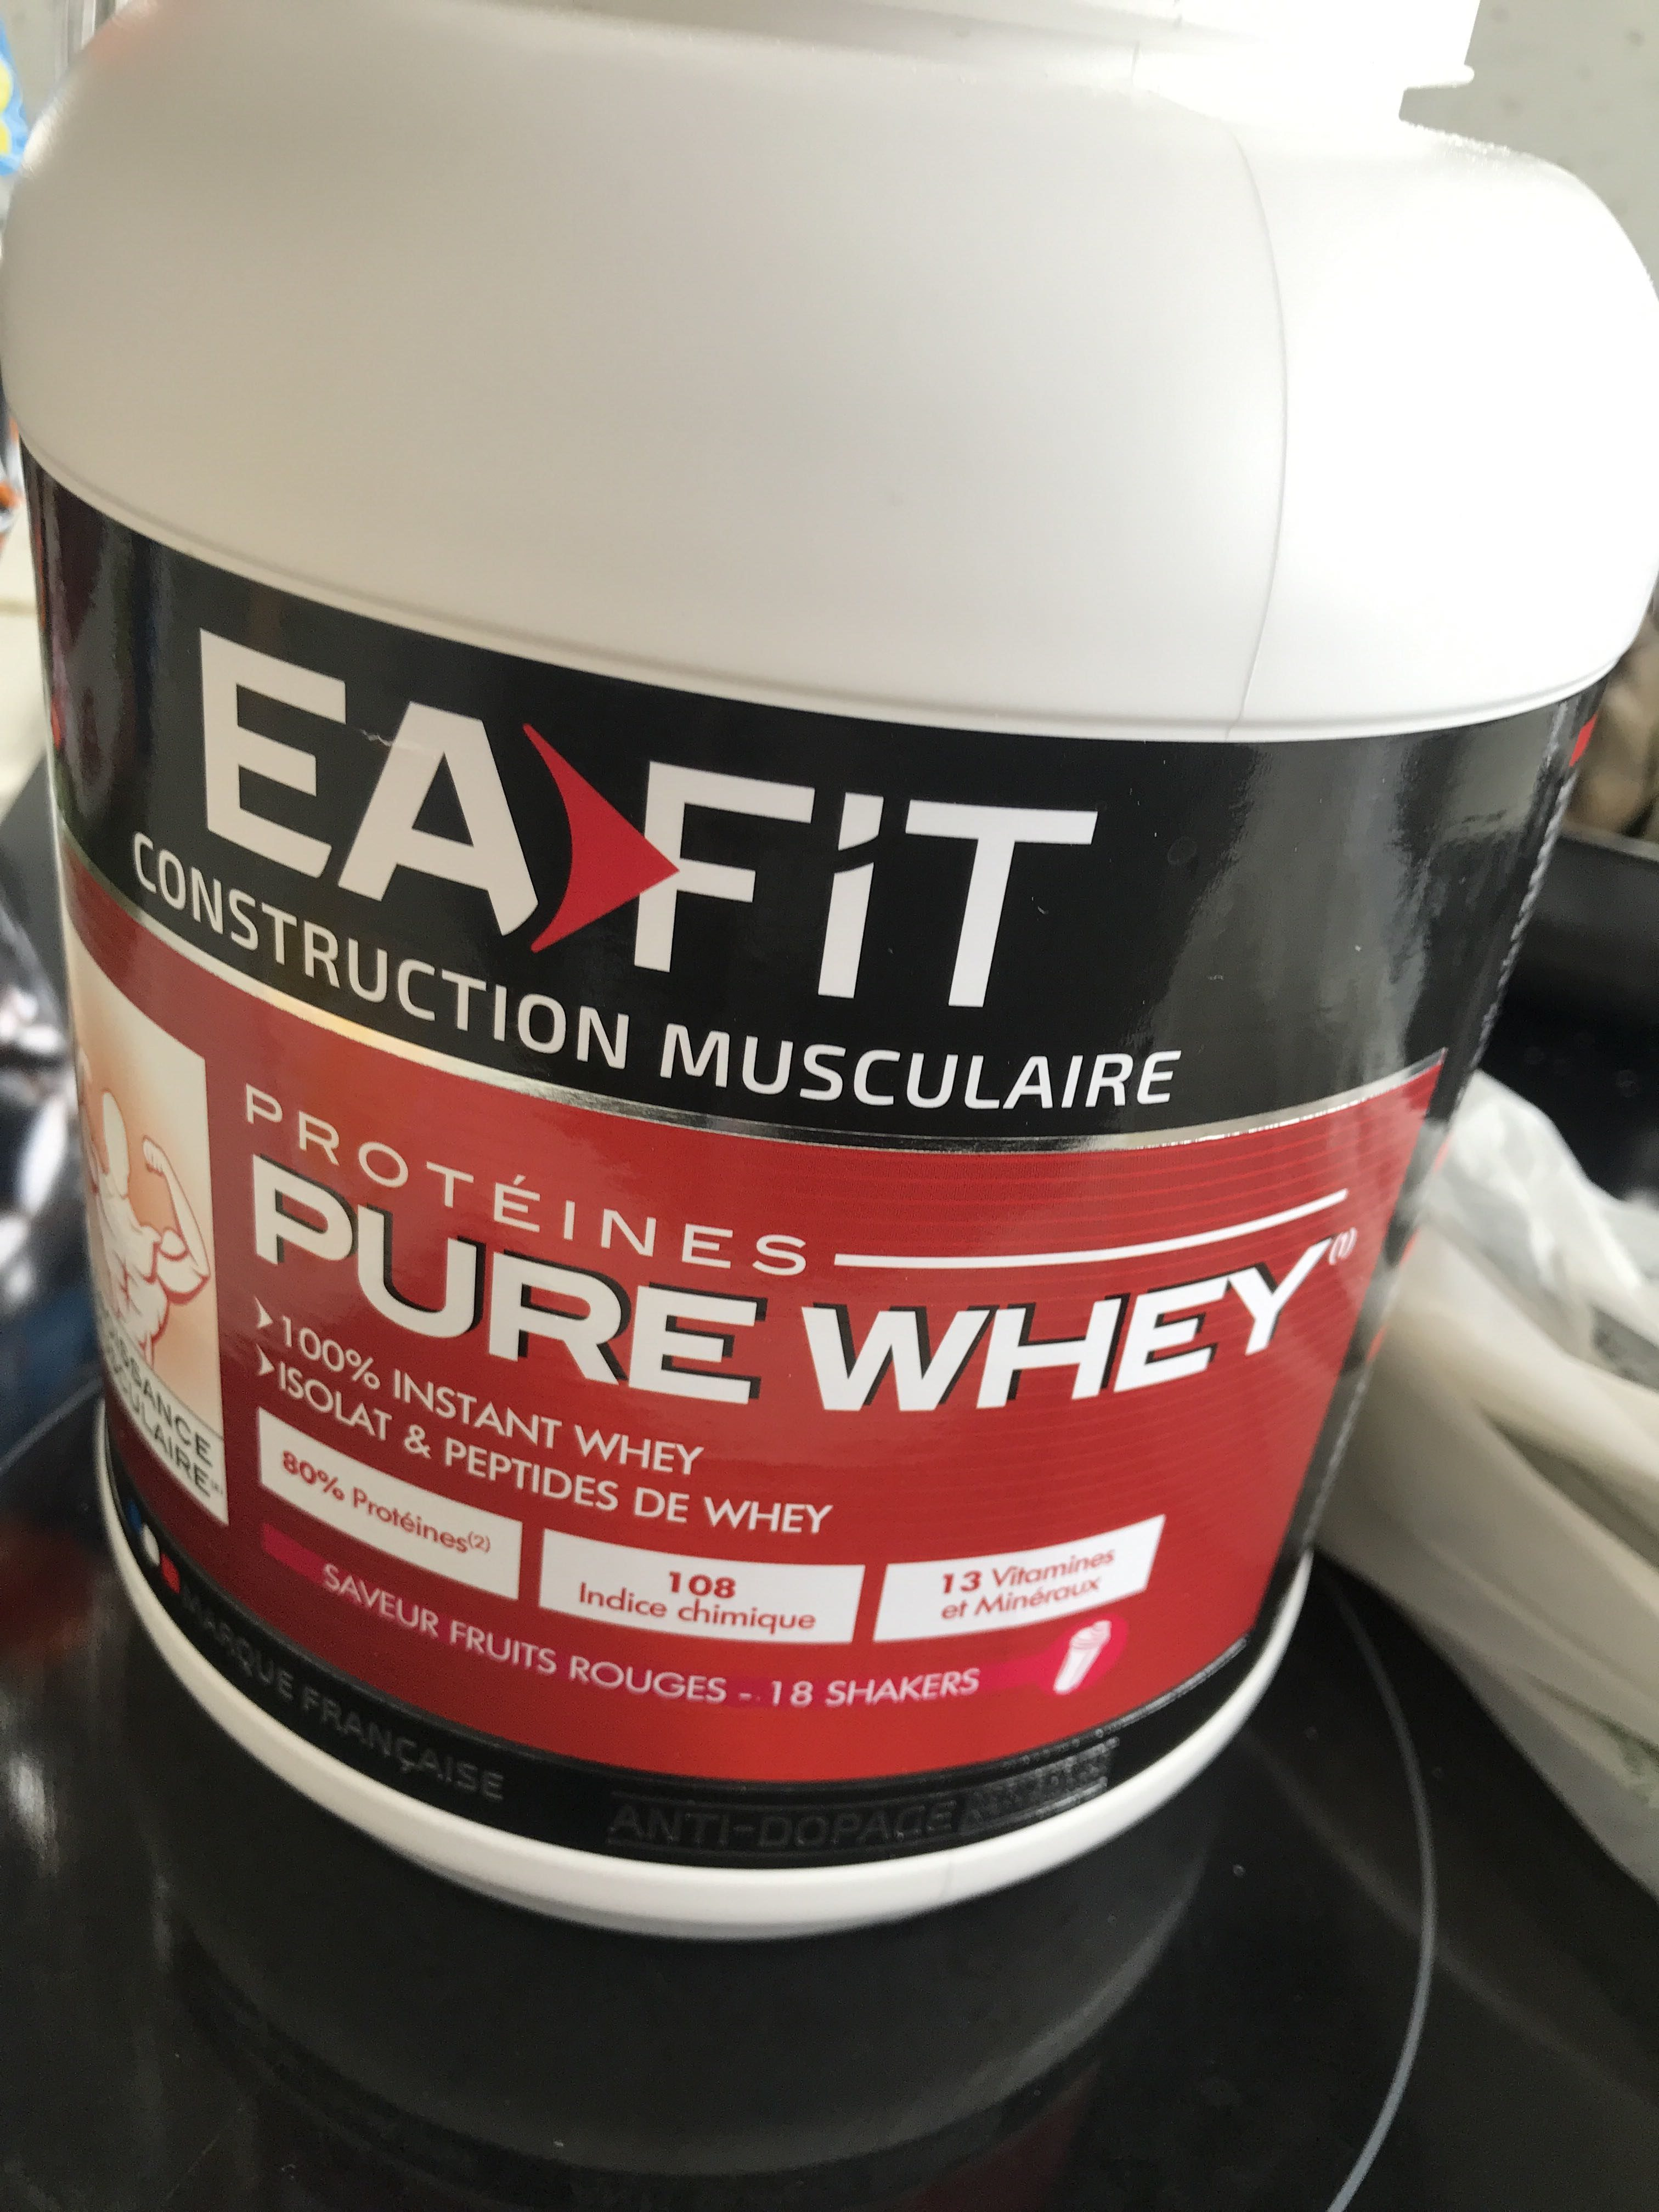 Eafit Pure Whey Croissance Musculaire Max Yaourt Fruits Rouges - Product